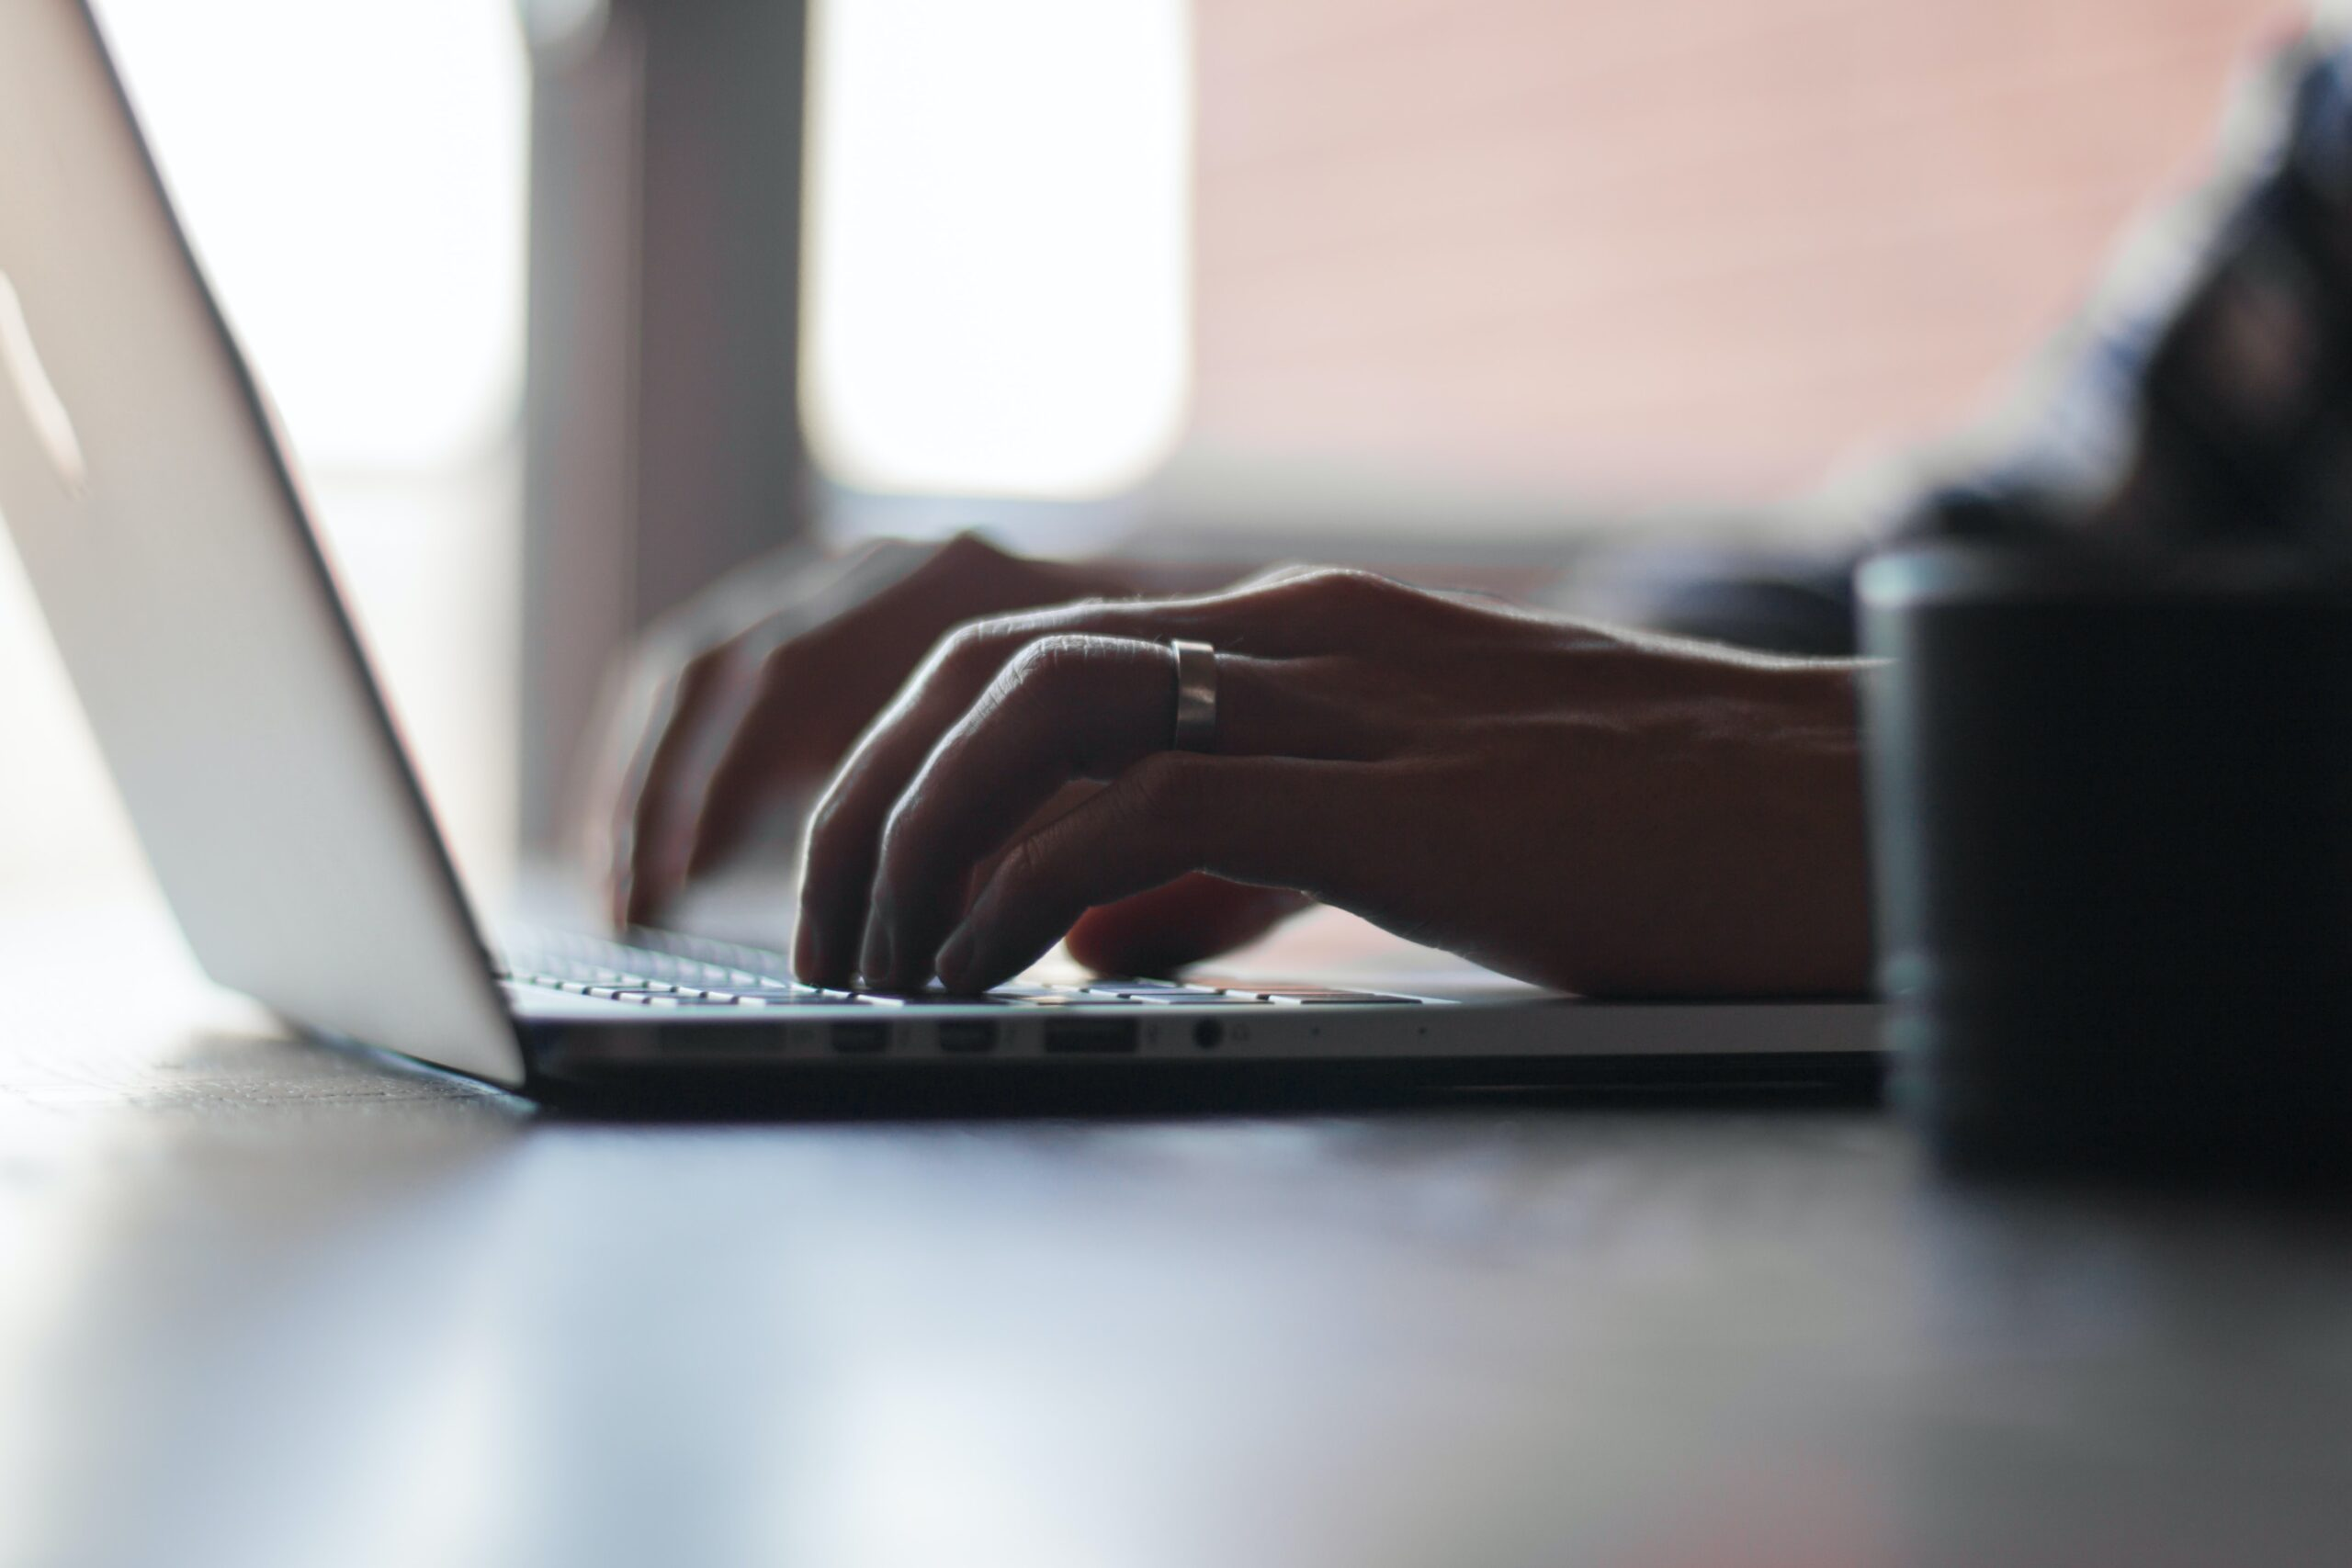 Hands of a person using a laptop. Image credit: UnSplash